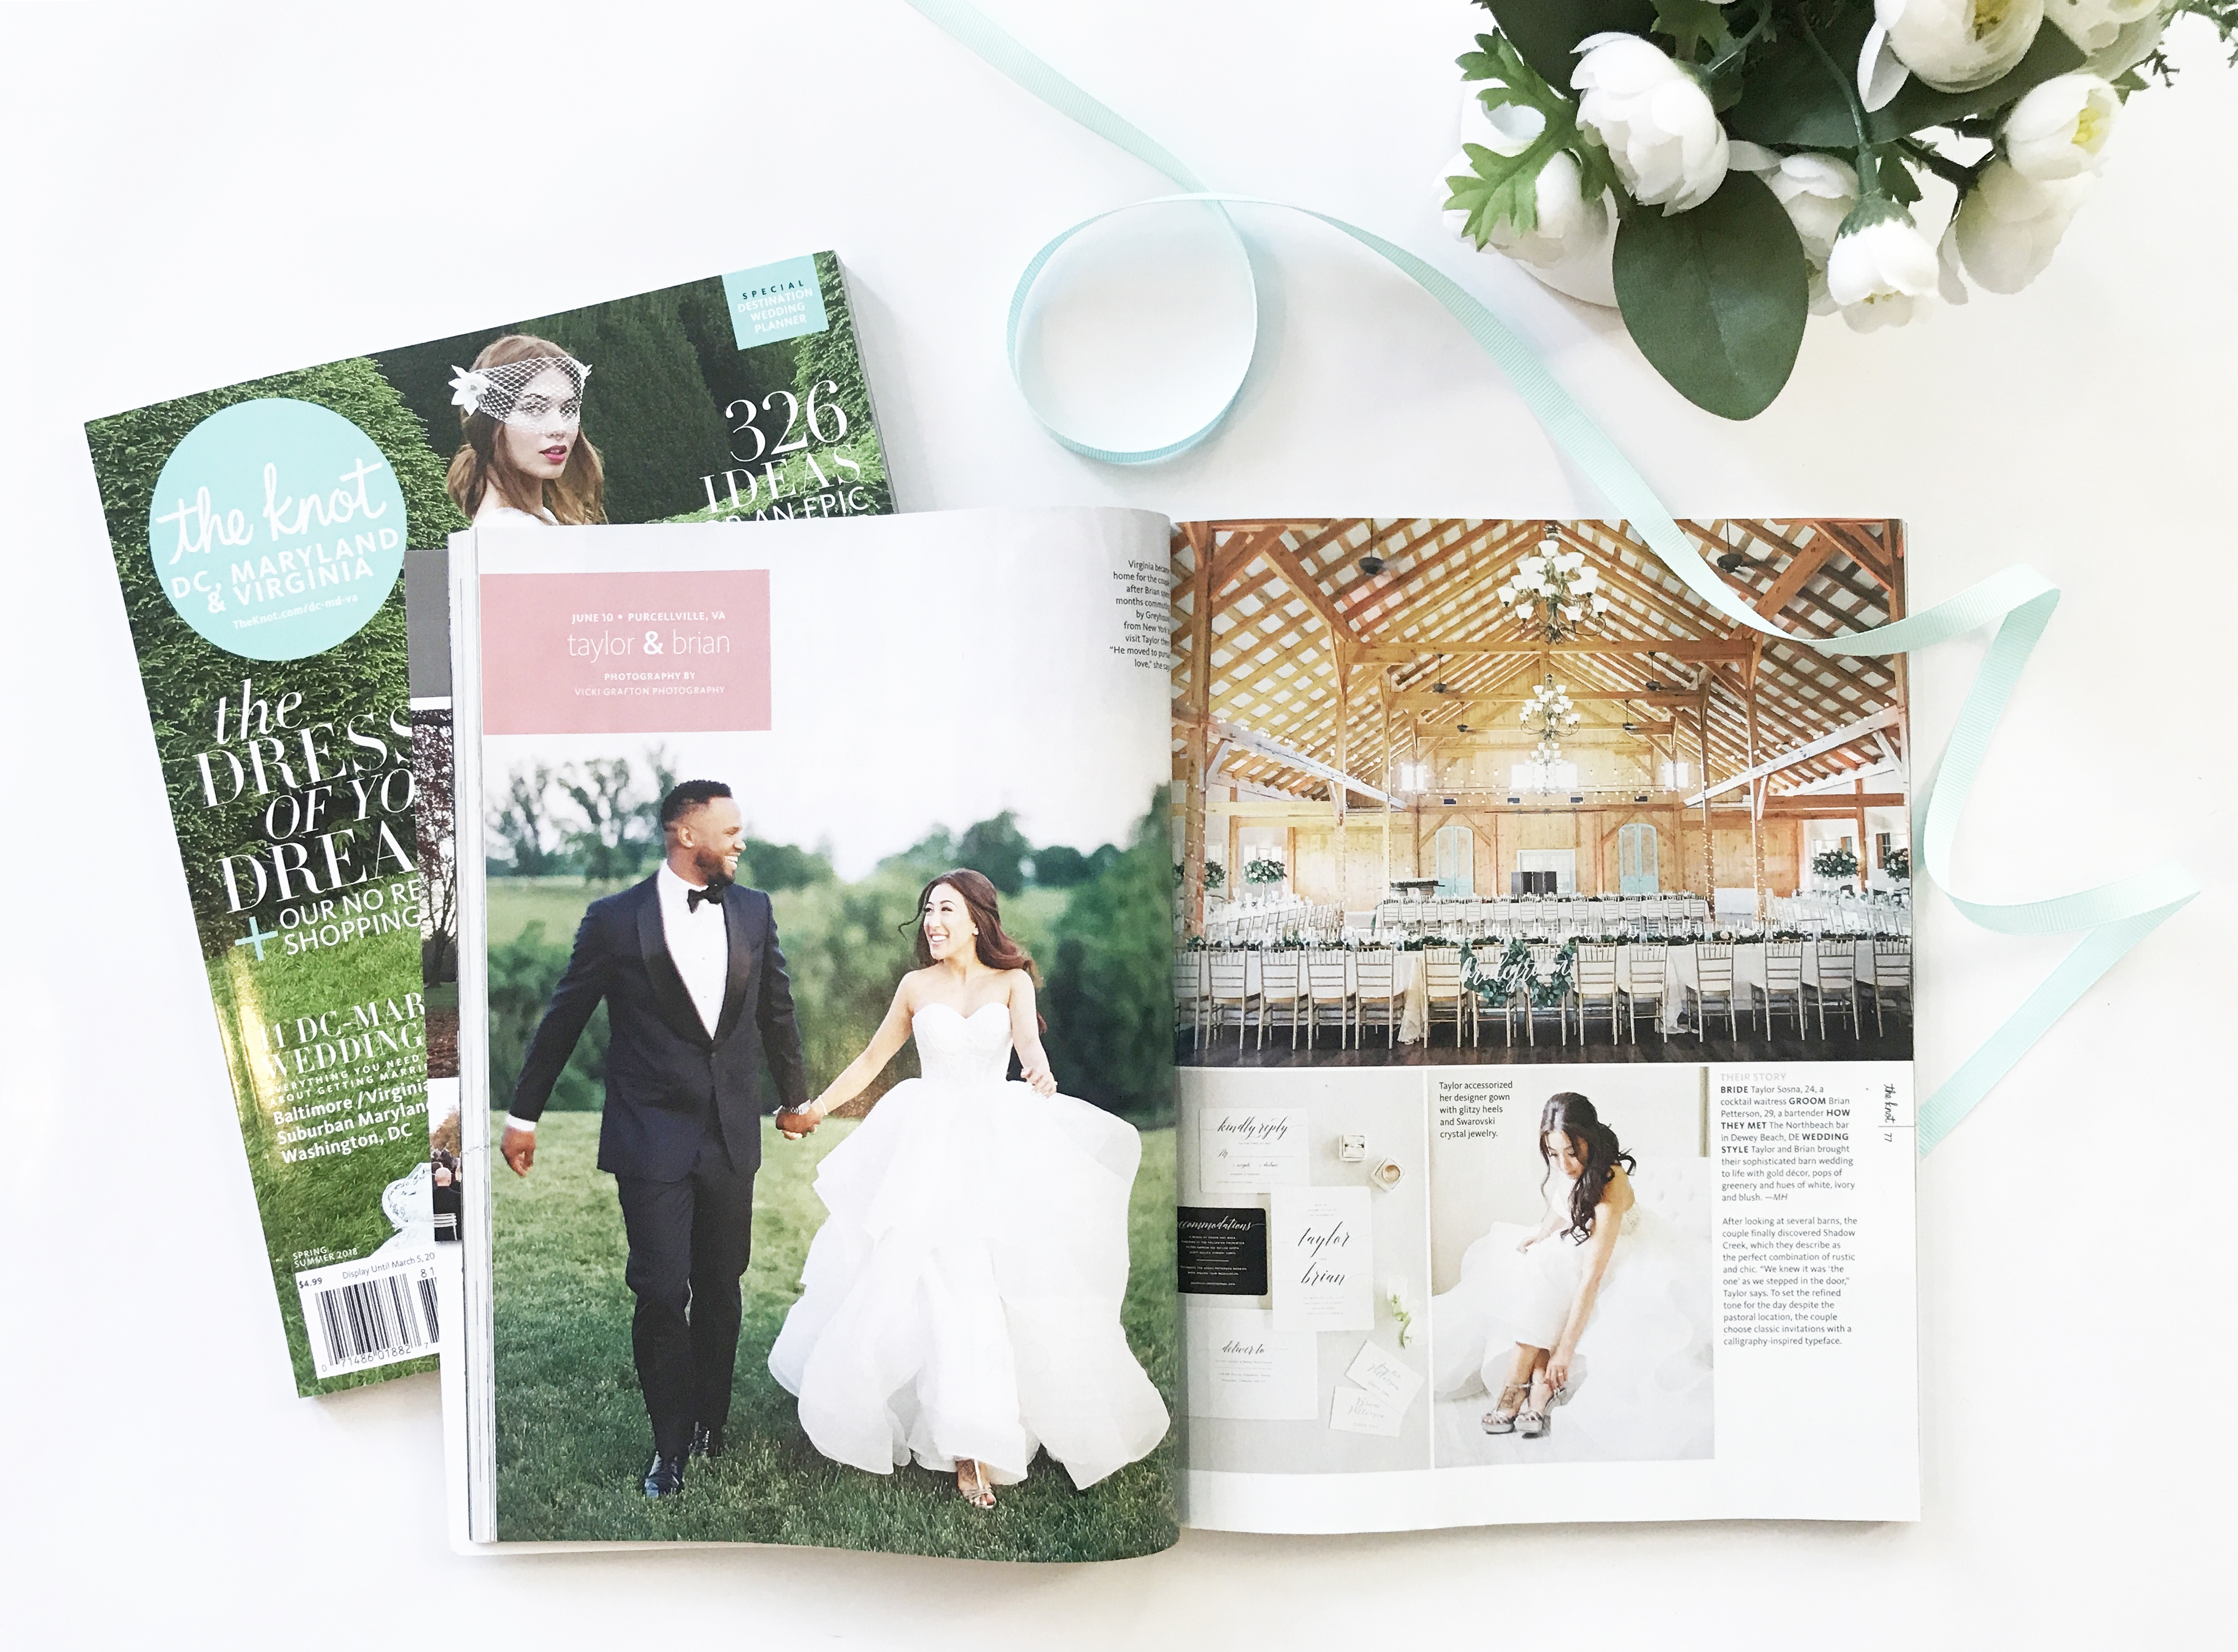 Virginia barn wedding venue, Shadow Creek, featured in The Knot